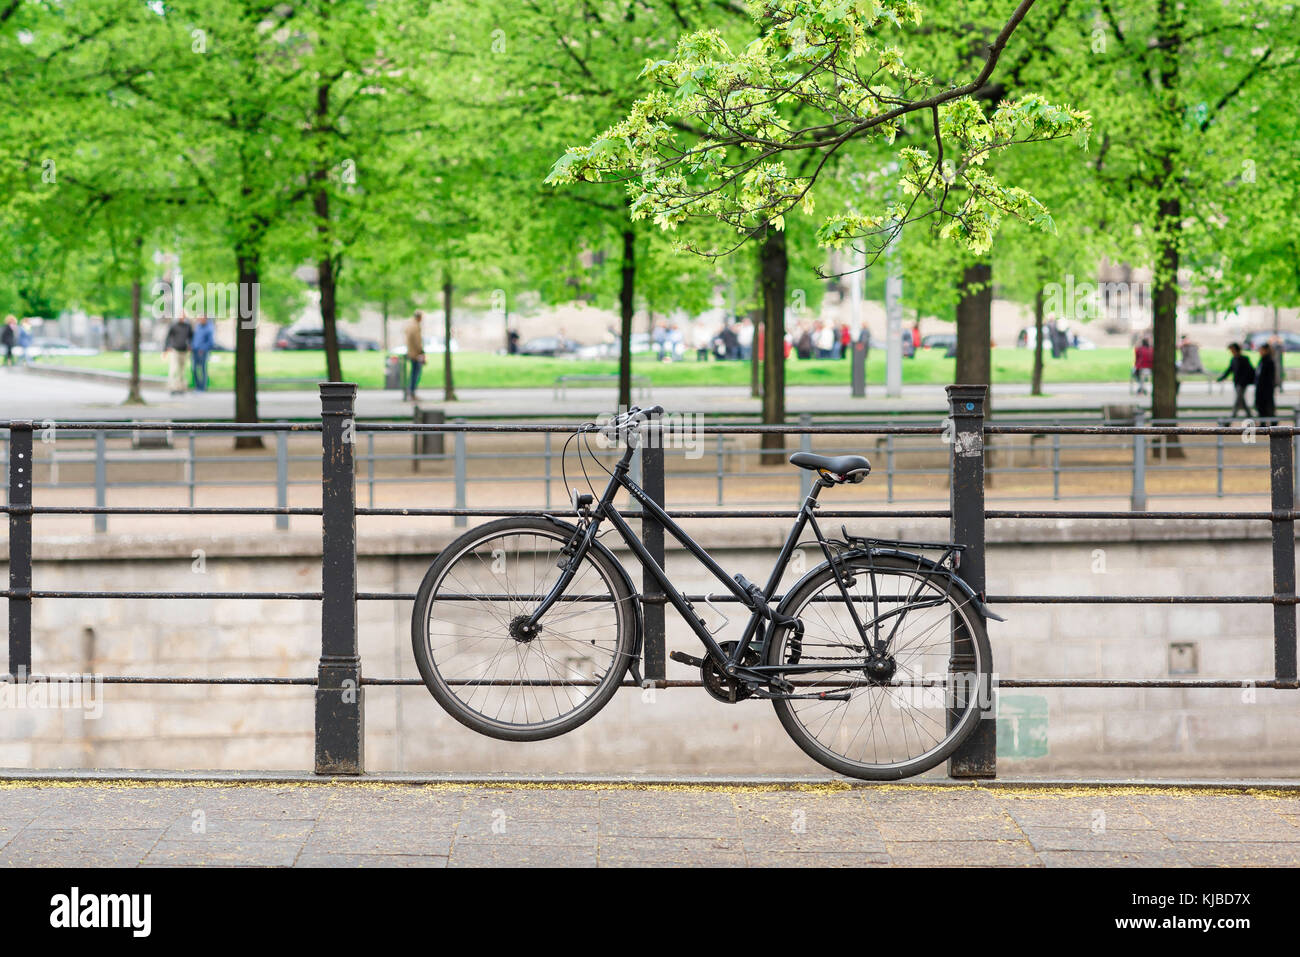 A black bicycle chained to railings near the Lustgarten park in Berlin, Germany, Europe - Stock Image